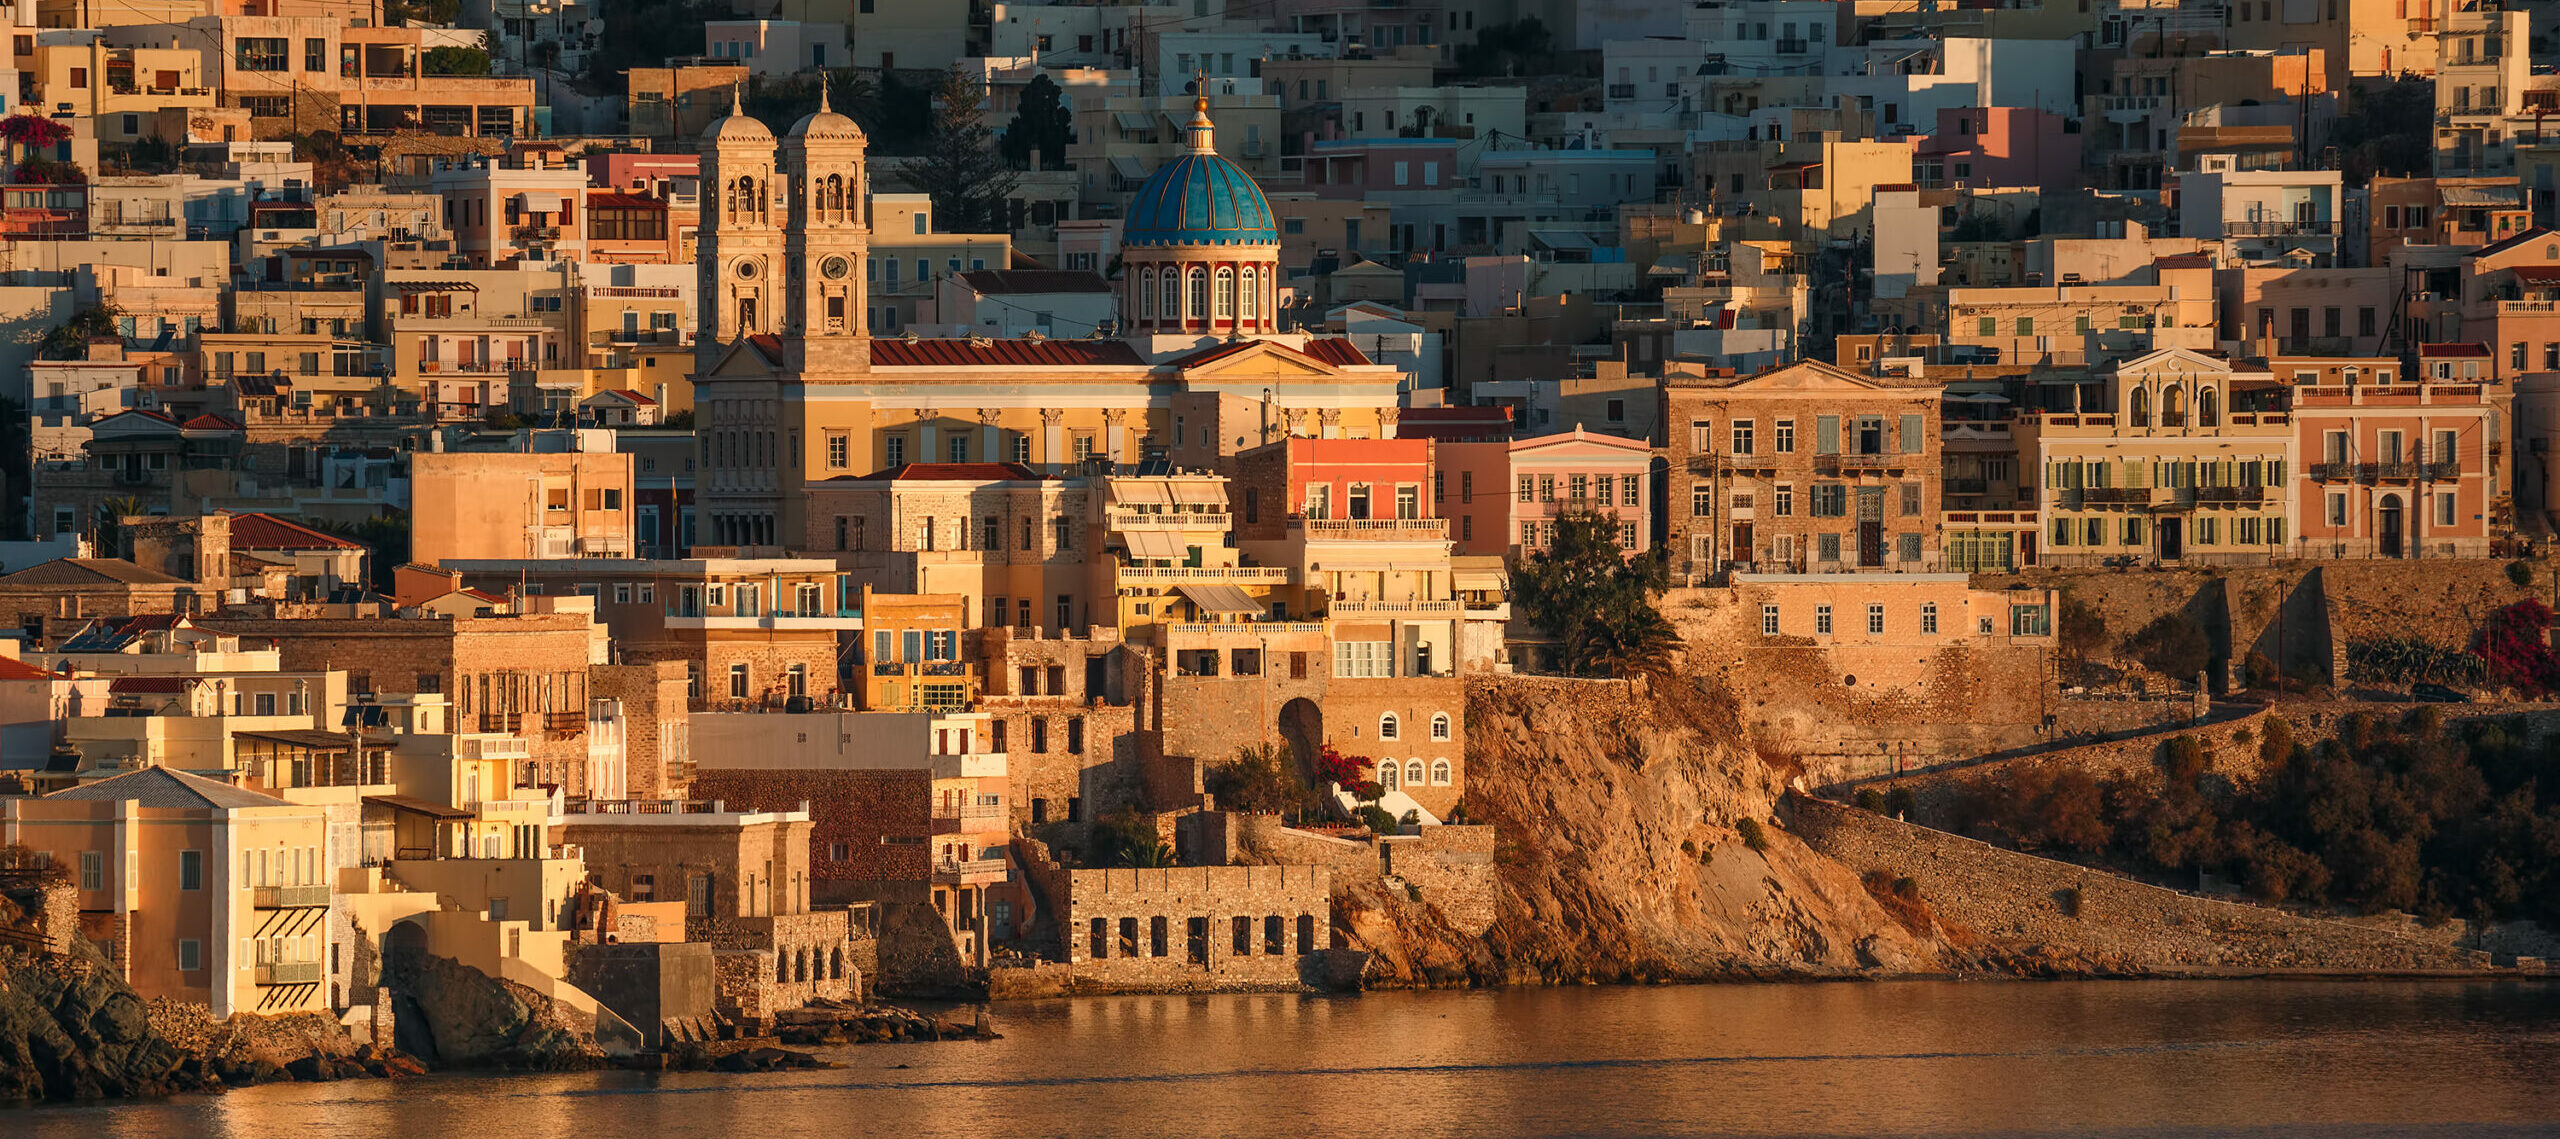 Syros: A gastronomic trip with the traditional recipe for loukoumia (Turkish delights)